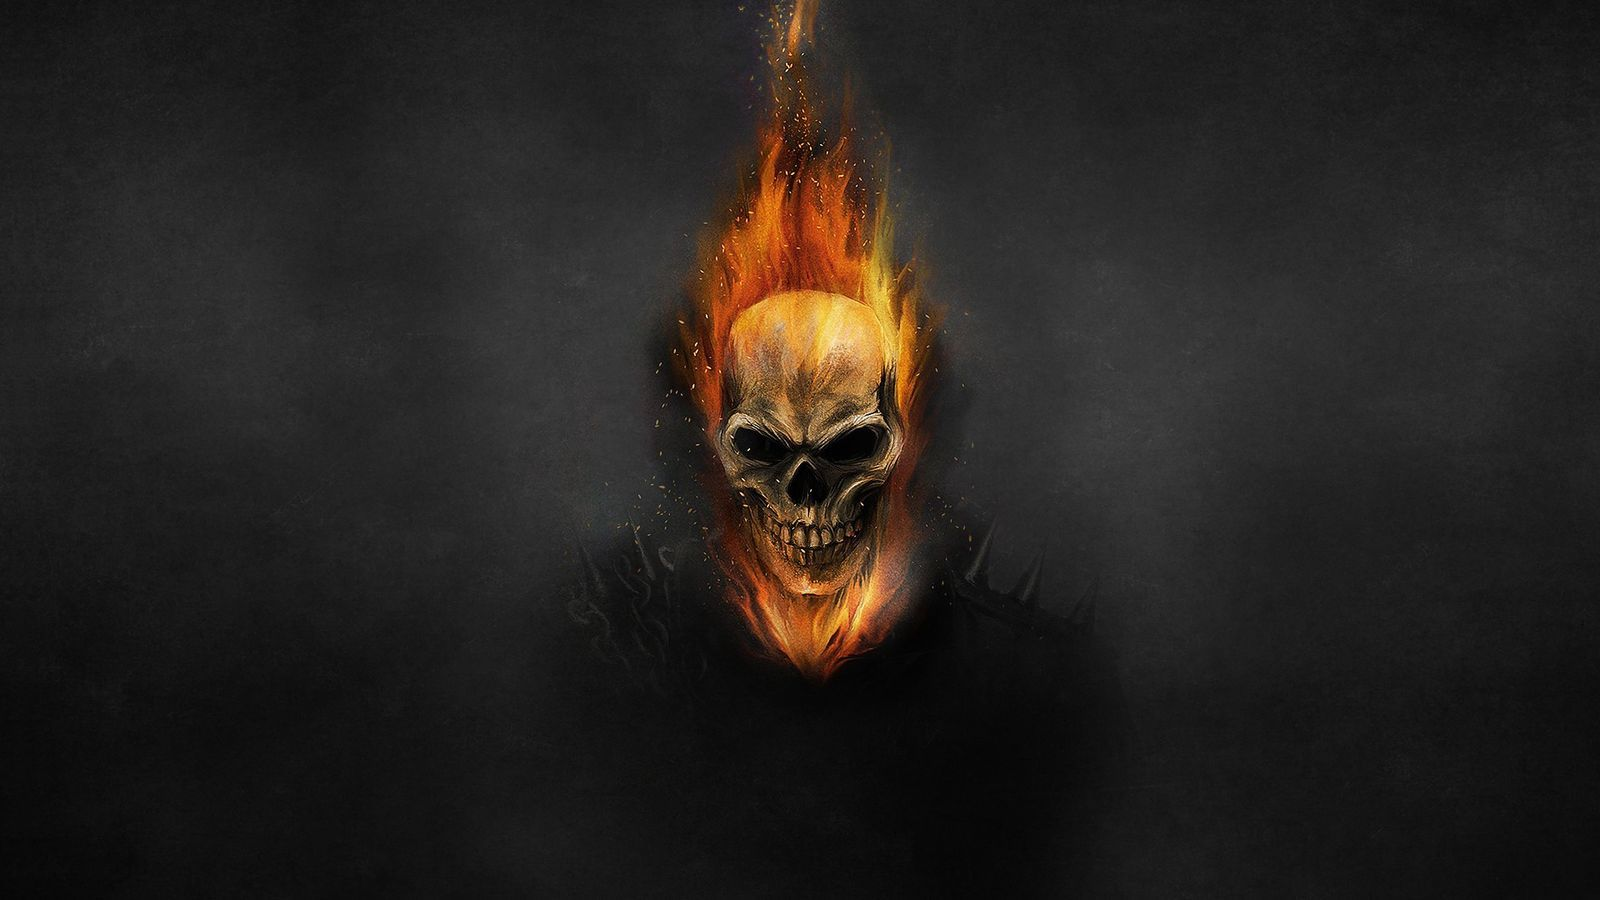 collection of ghost rider wallpaper free download on spyder